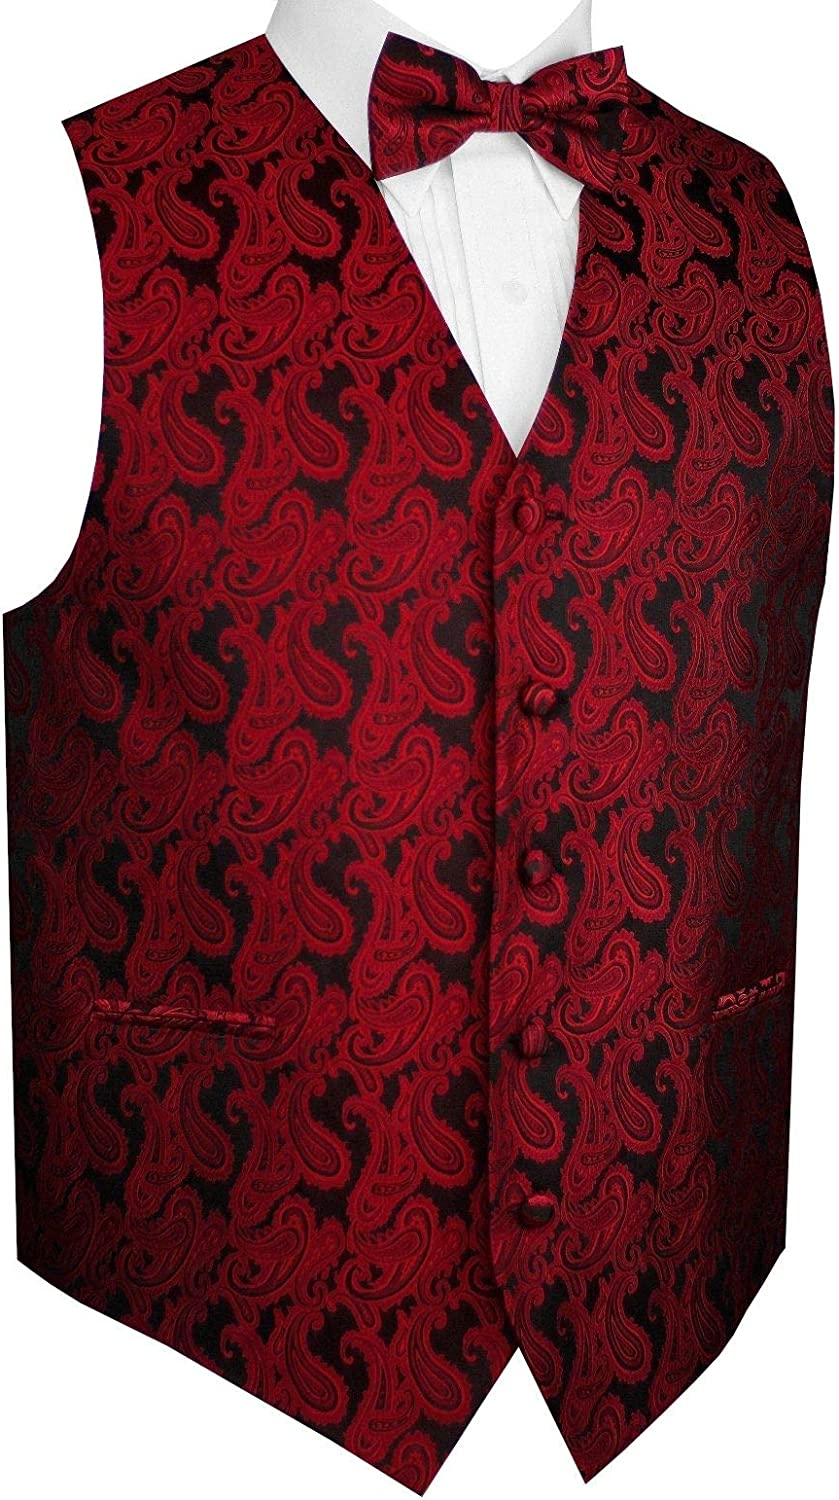 Men's Formal, Prom, Wedding, Tuxedo Vest, Bow-Tie & Hankie Set in Paisley